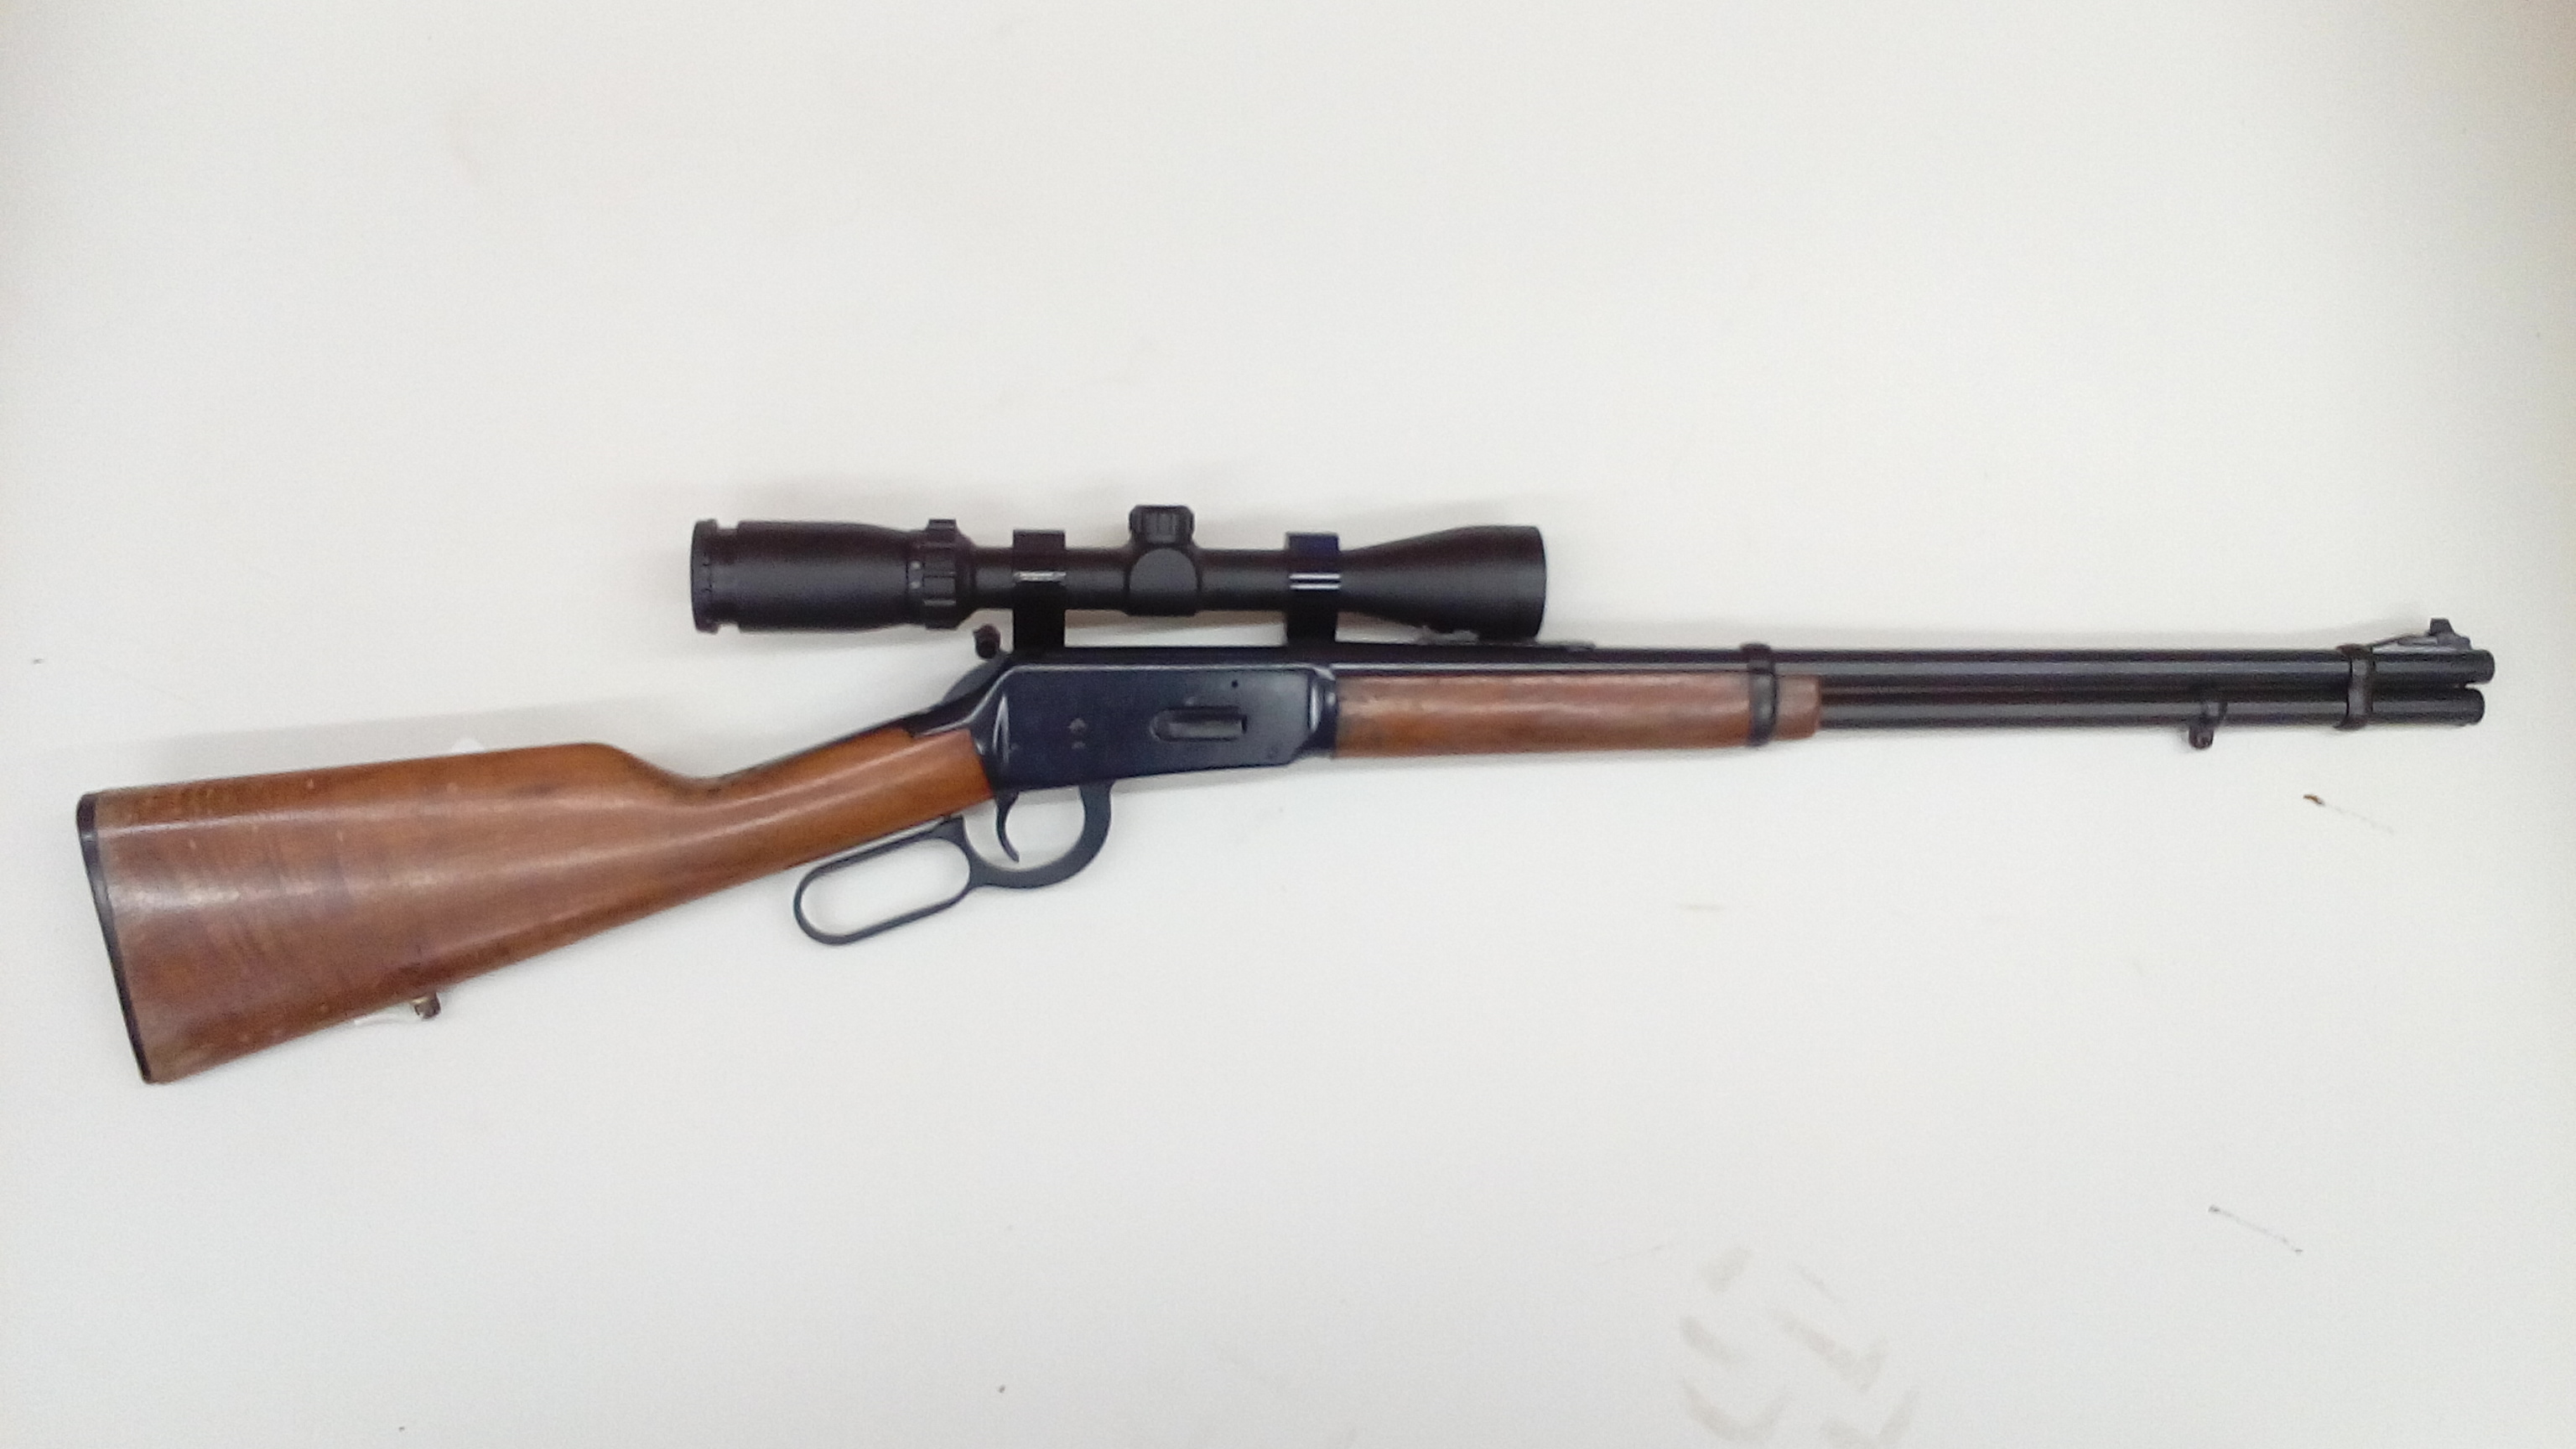 Winchester model 94 cerakoted with graphite black, this gun was also in a fire.